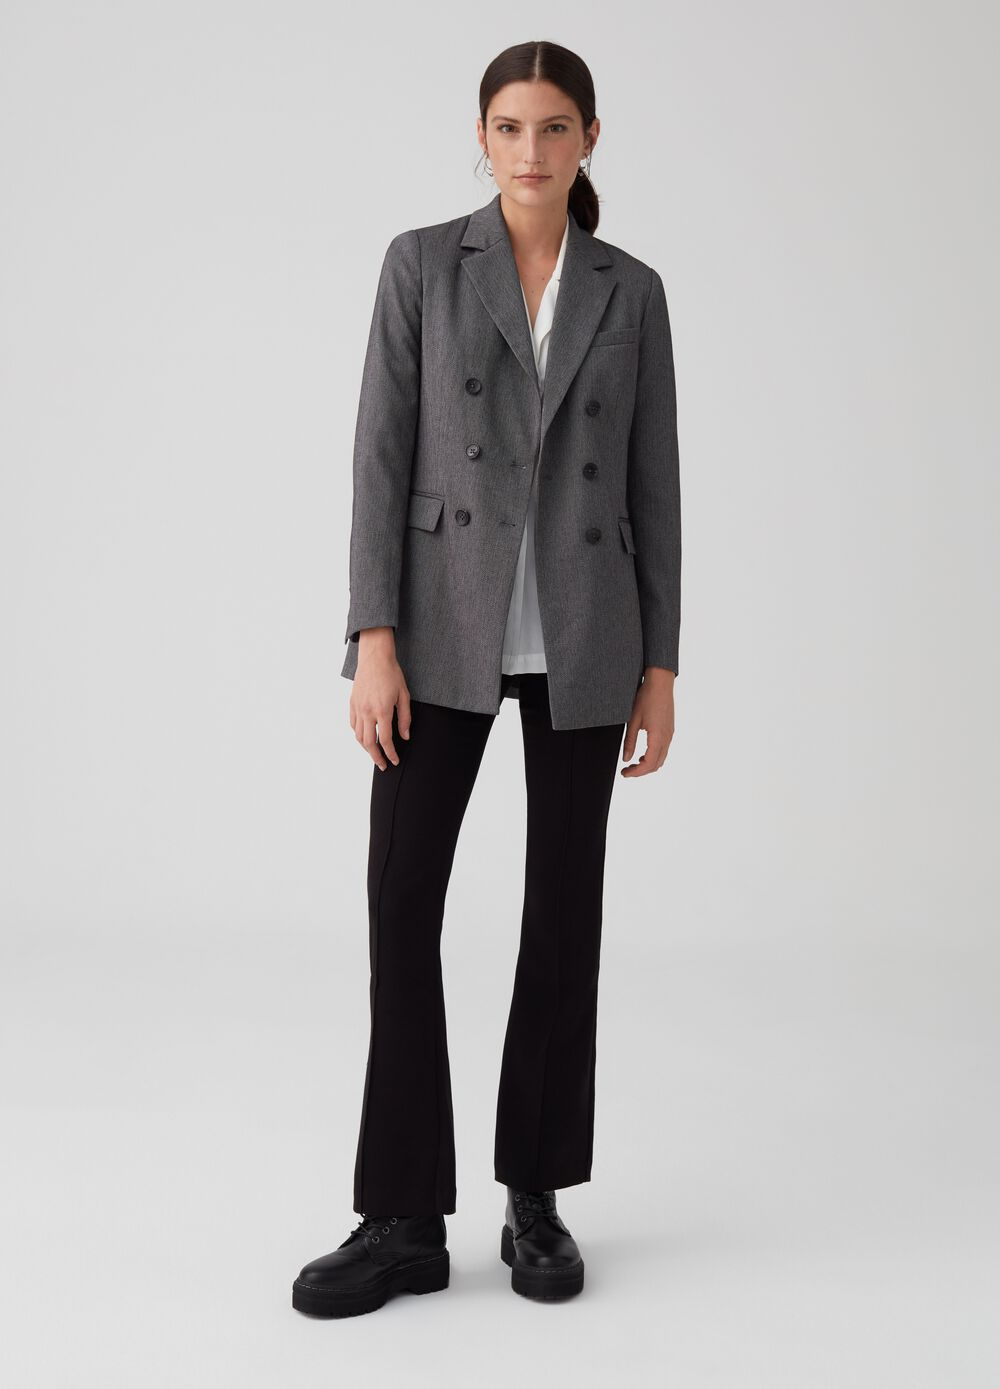 Flare trousers in comfort fabric